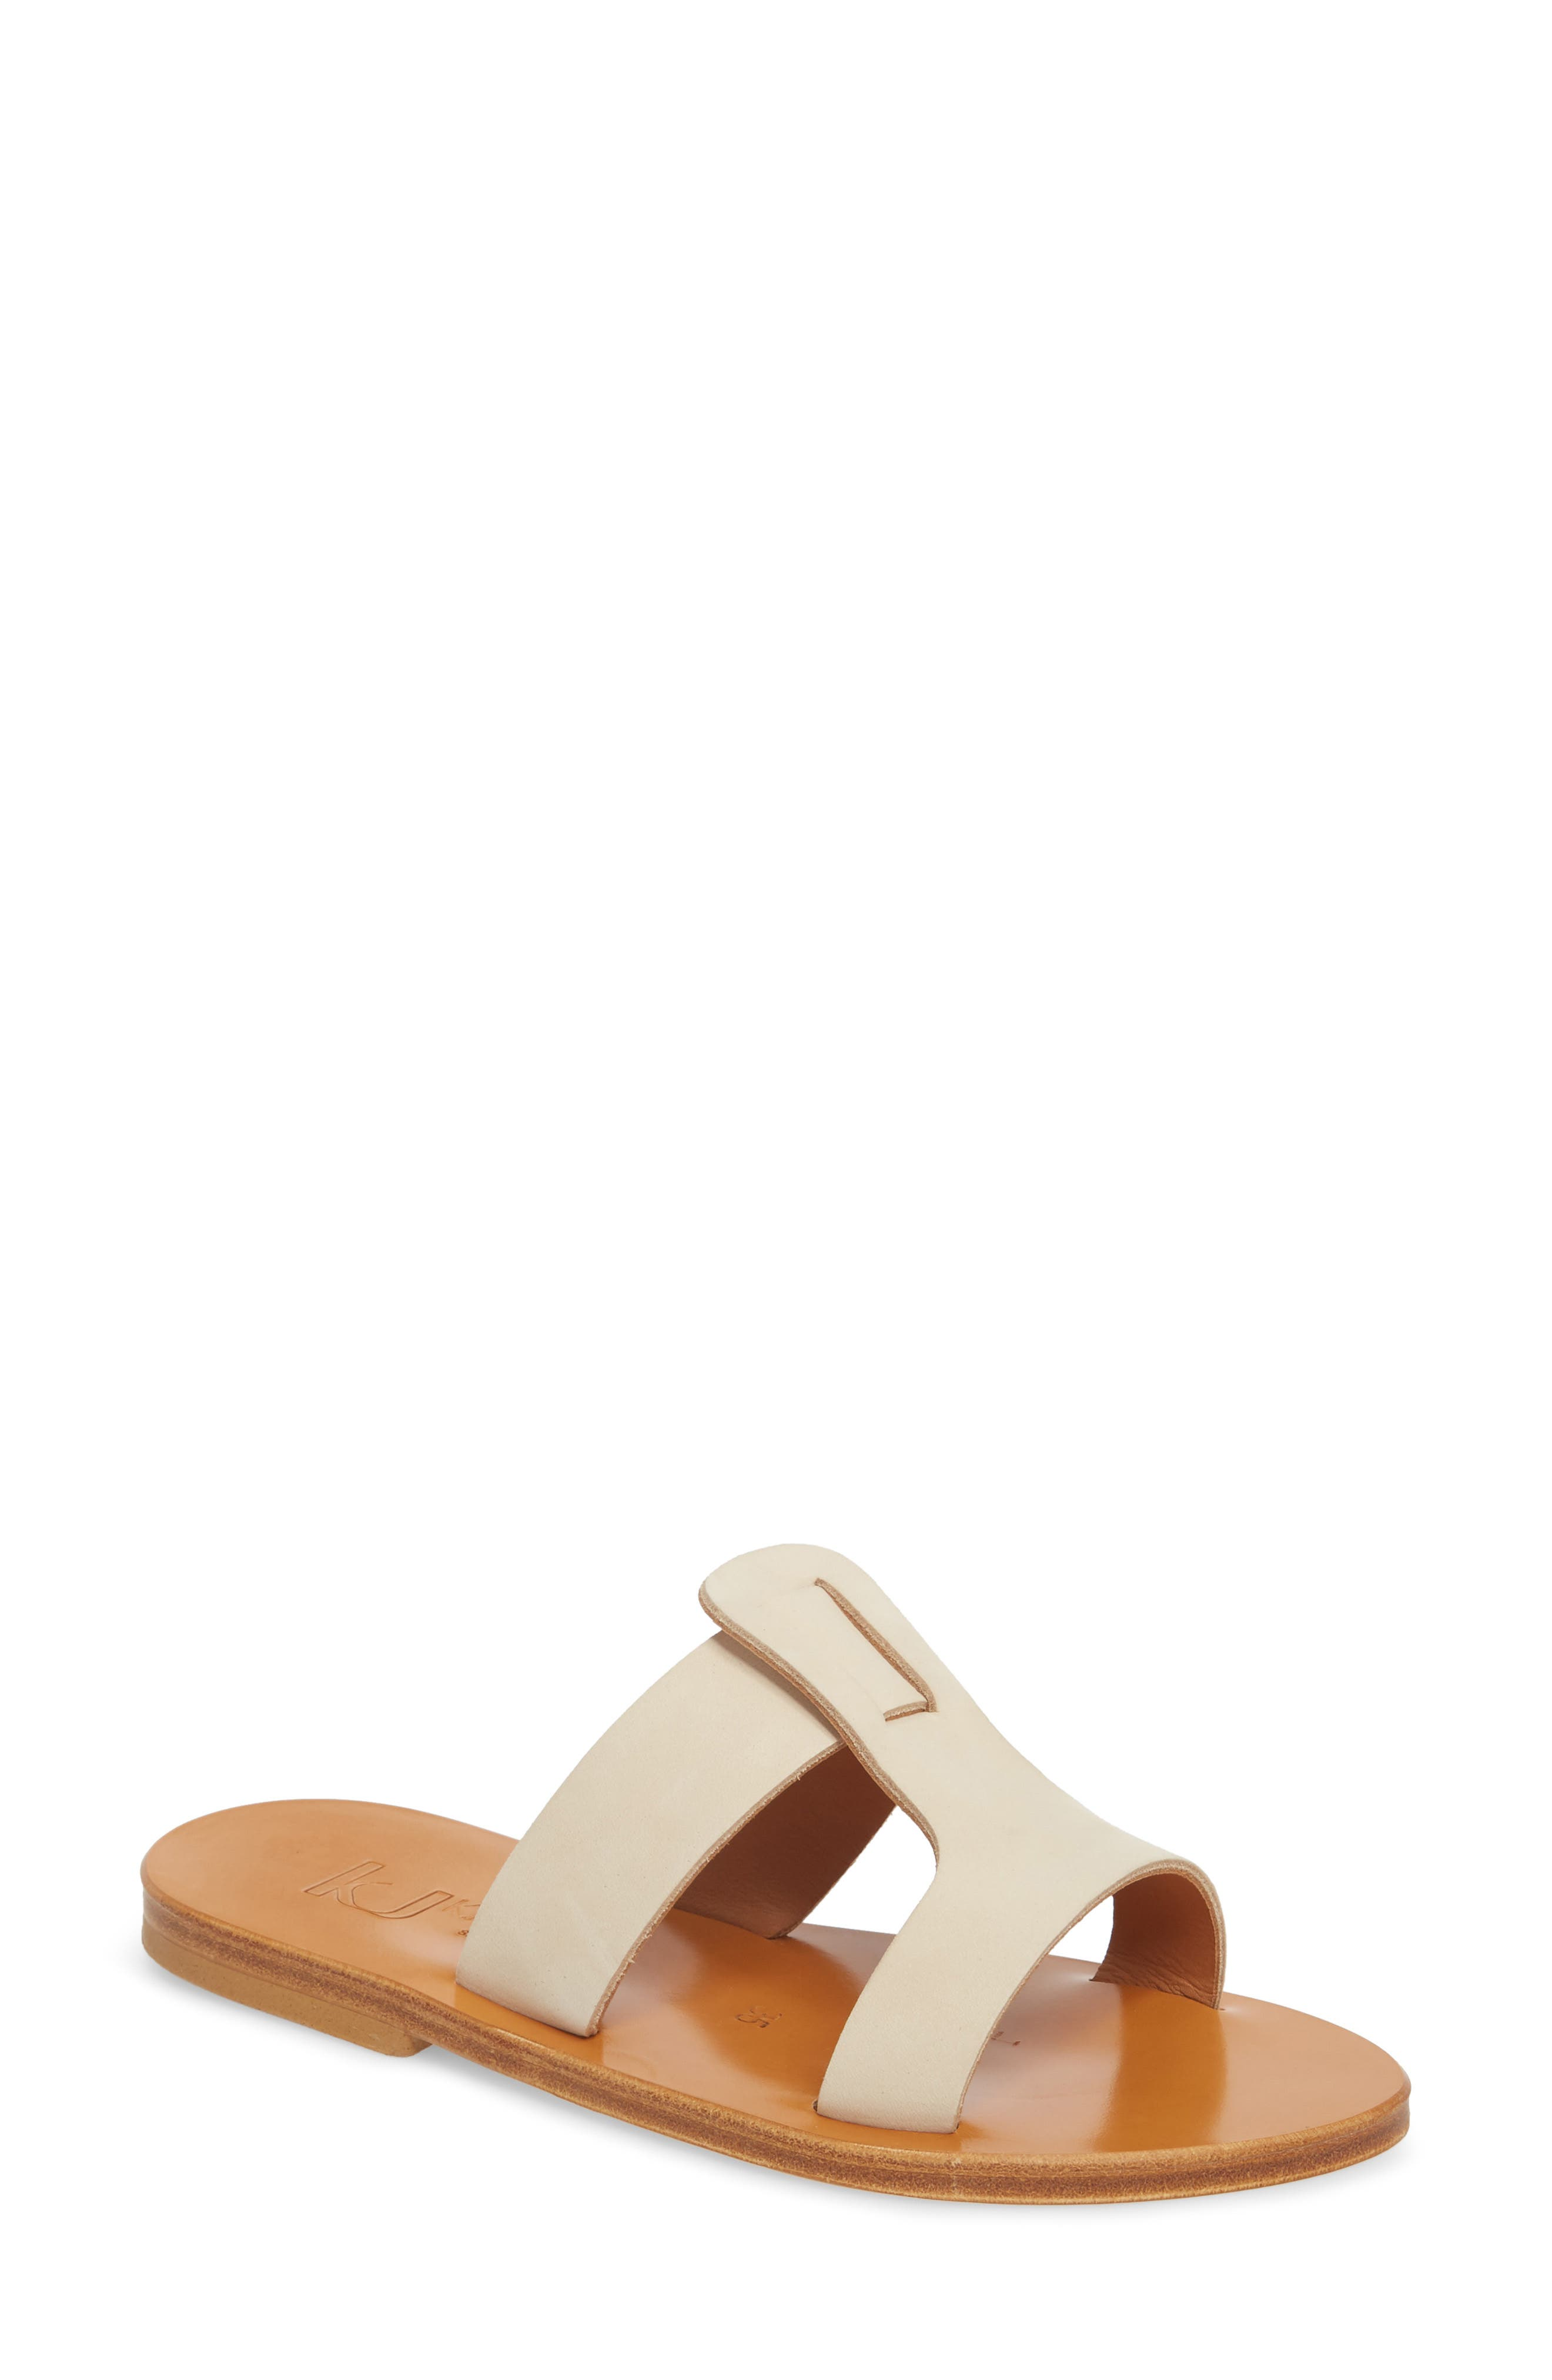 K. Jacques St. Tropez Slide Sandal (Women)